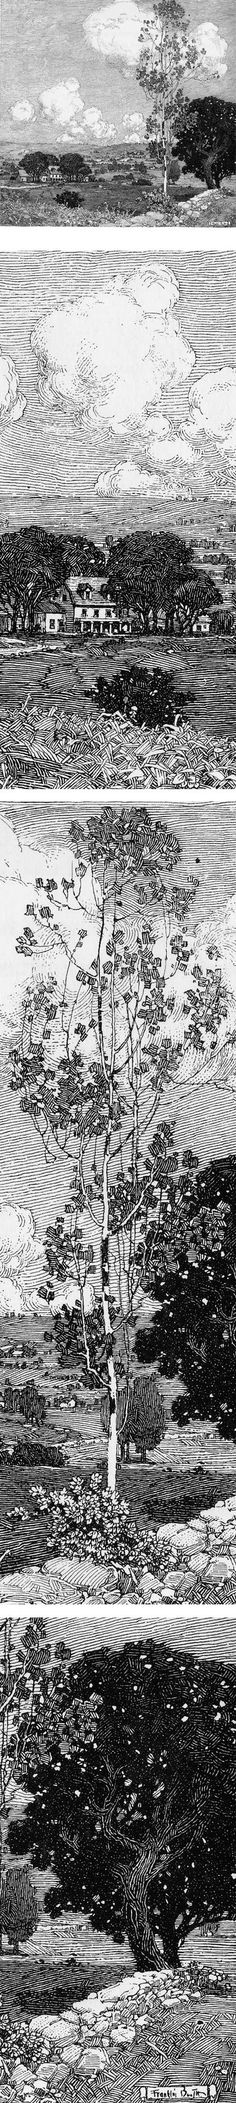 Eye Candy for Today: Franklin Booth pen and ink landscape drawing #LandscapeDrawing